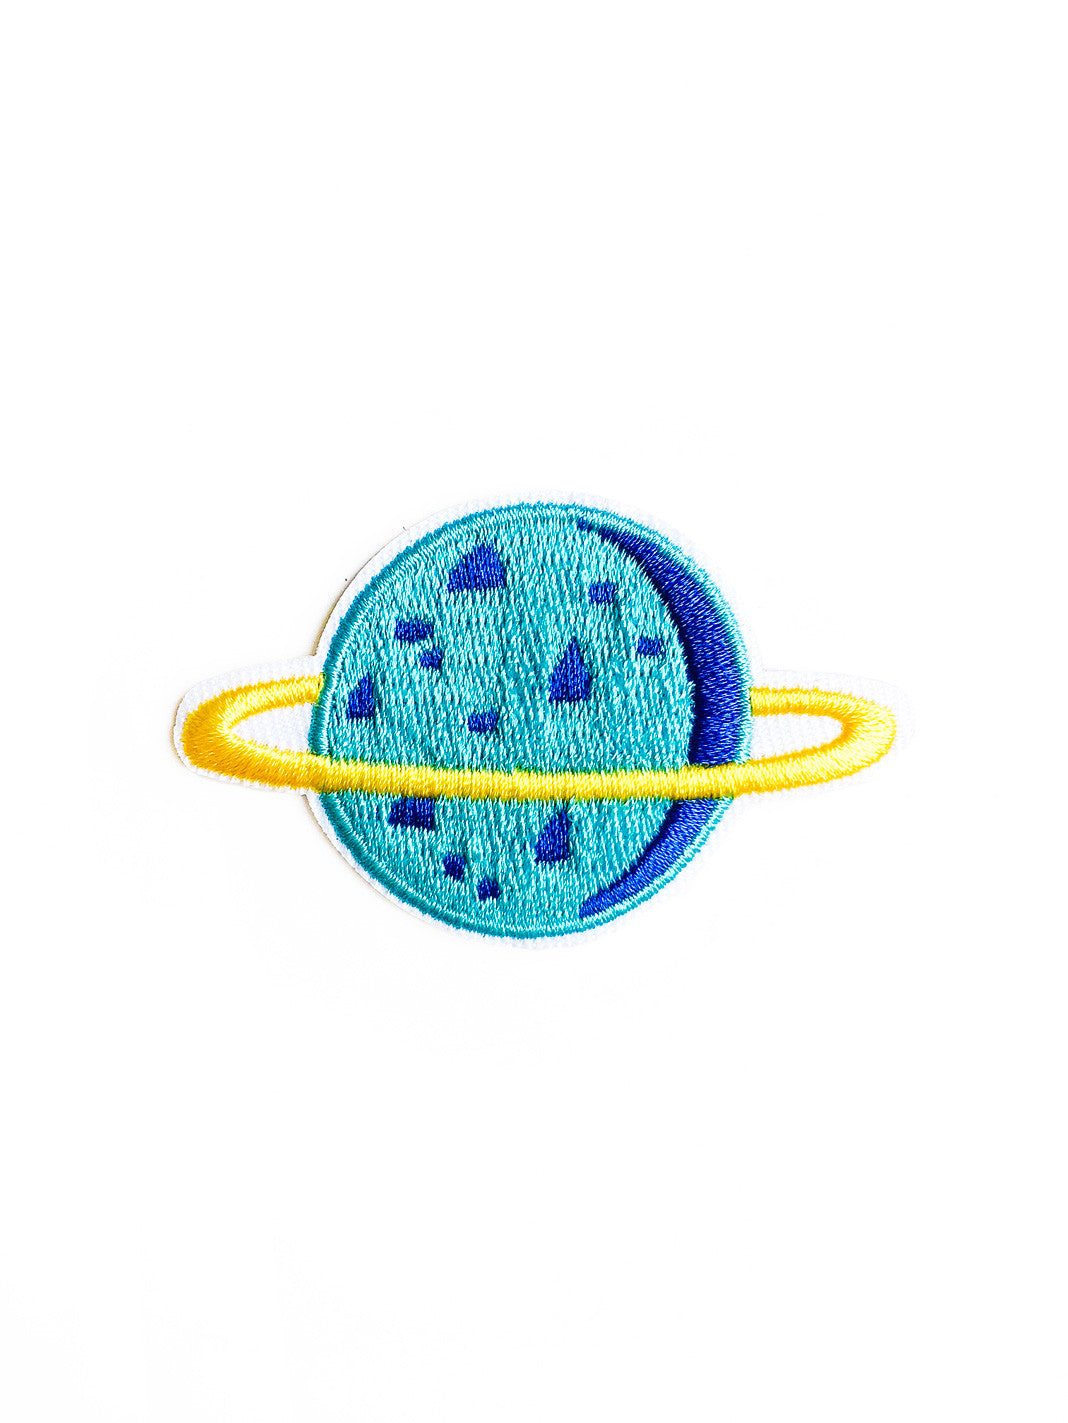 Blue Saturn Iron On Patch